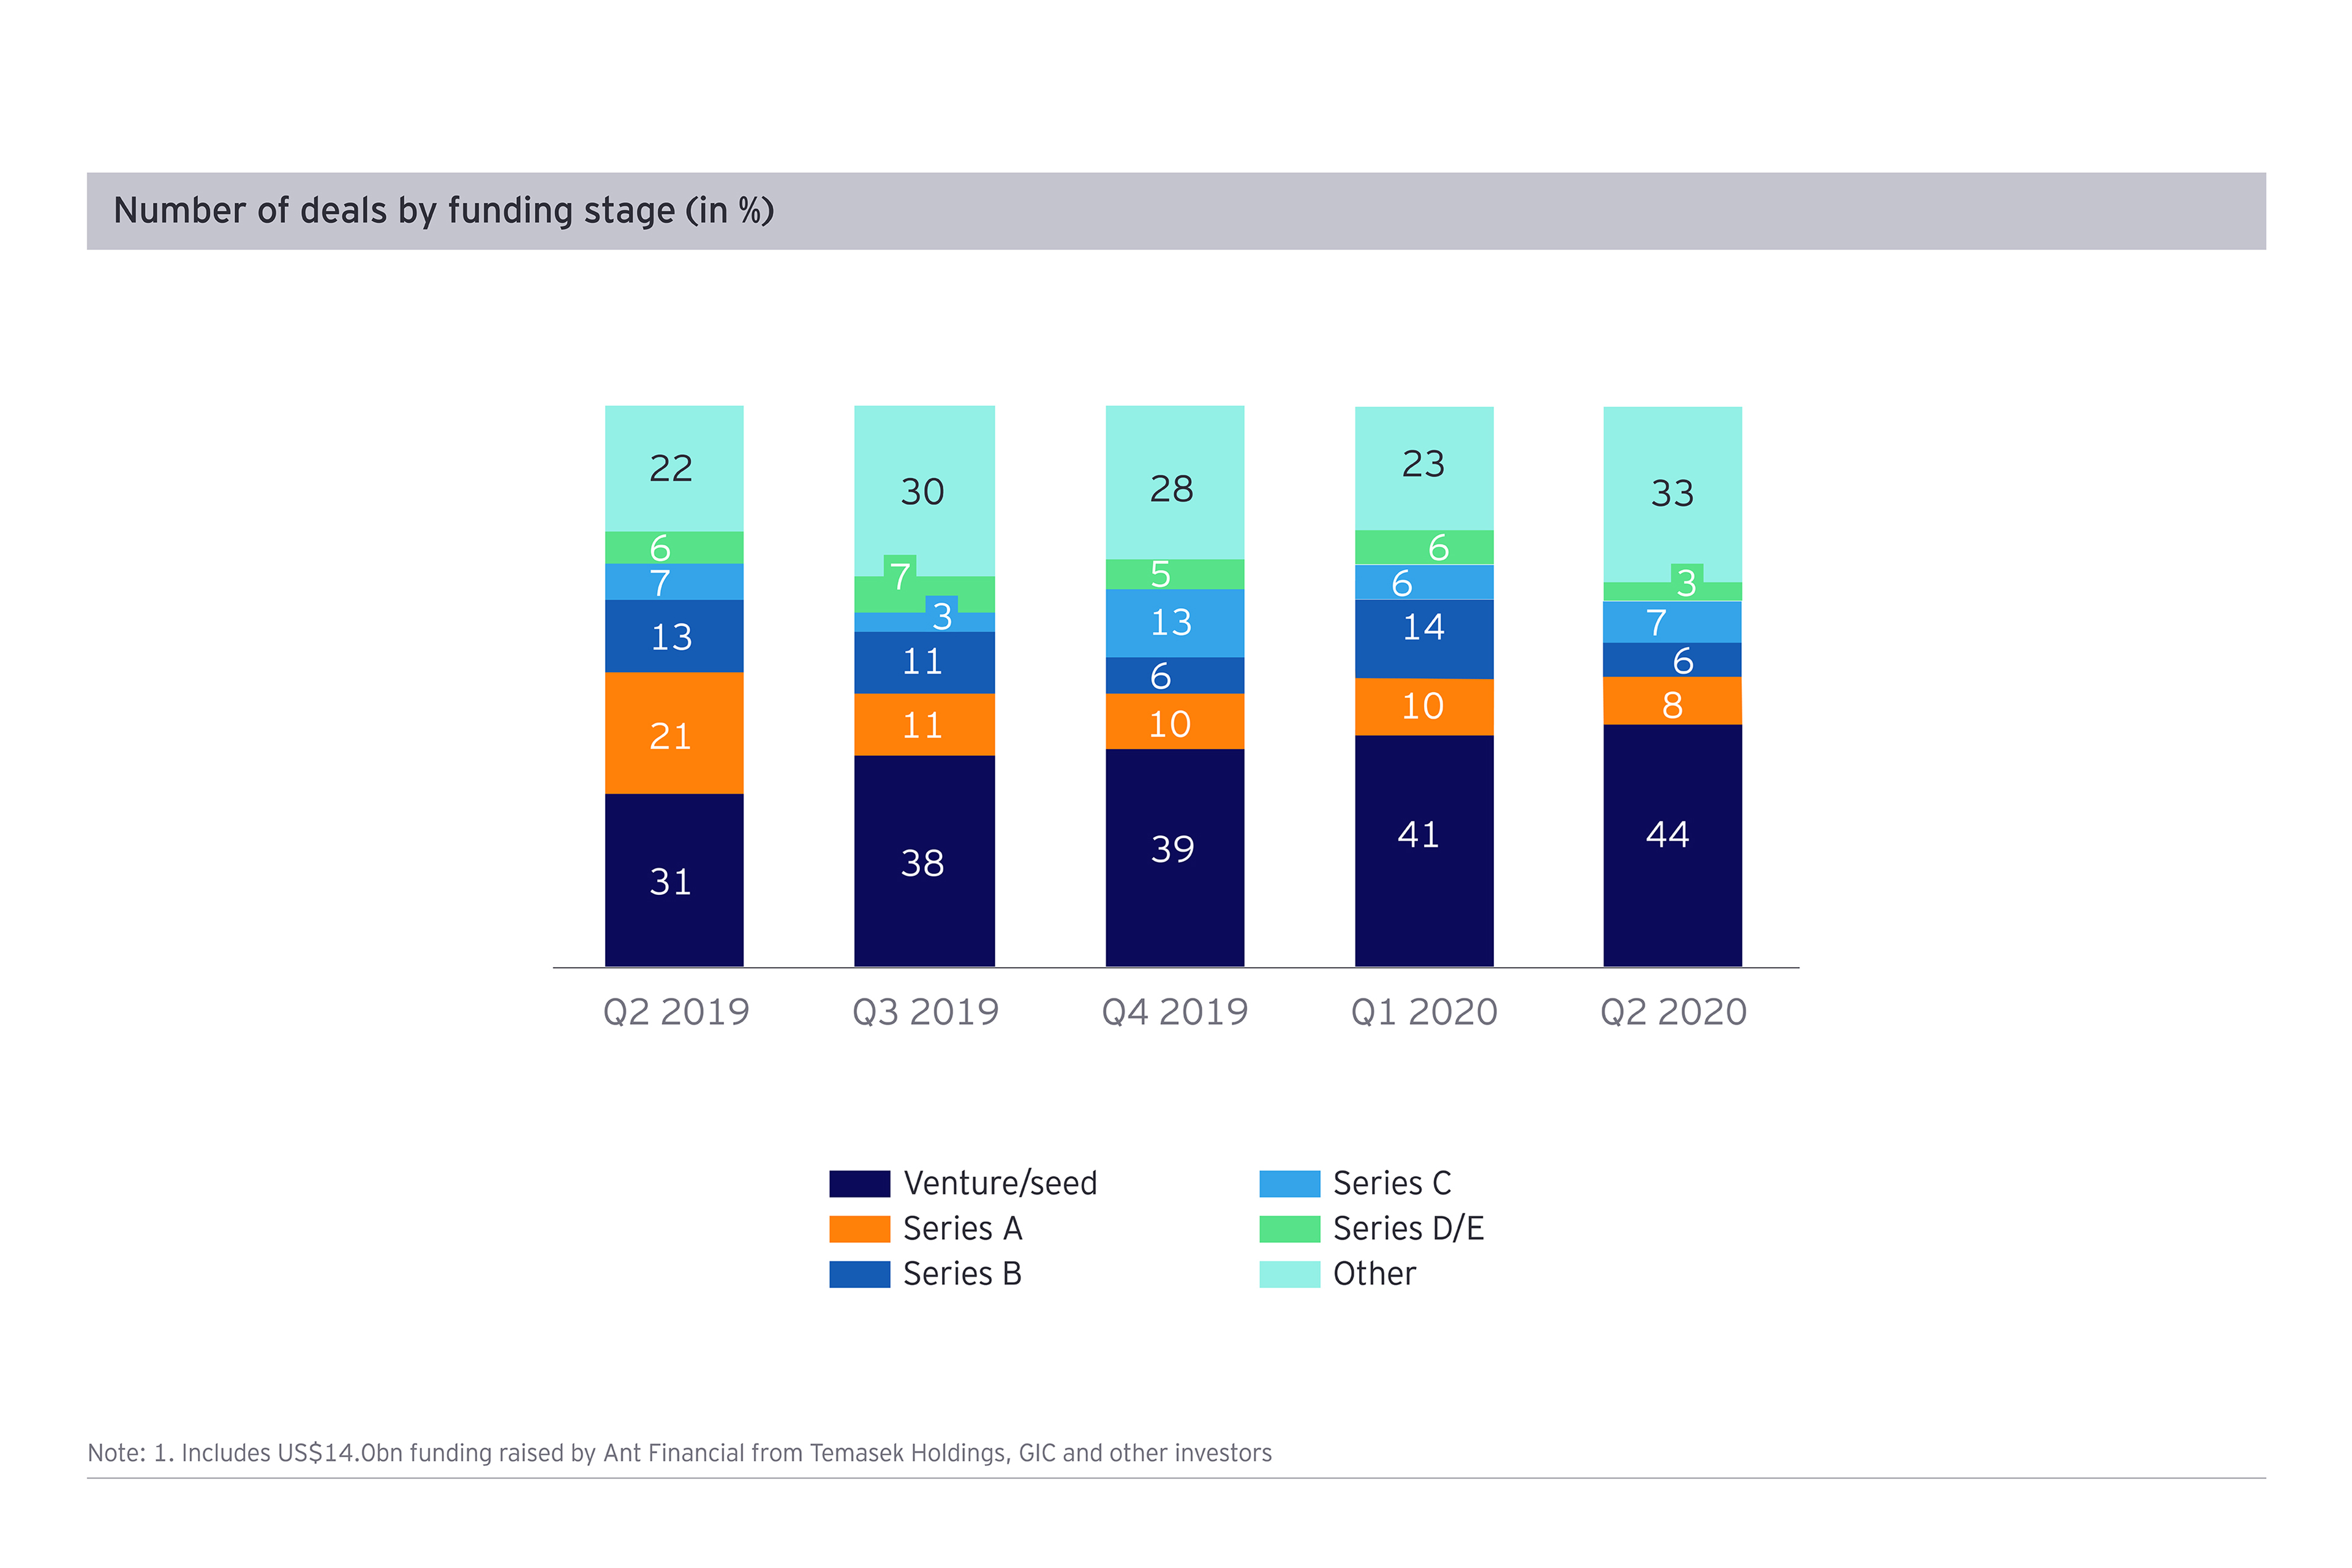 Venture capital deals in payments by funding stage (%), Q2 2020